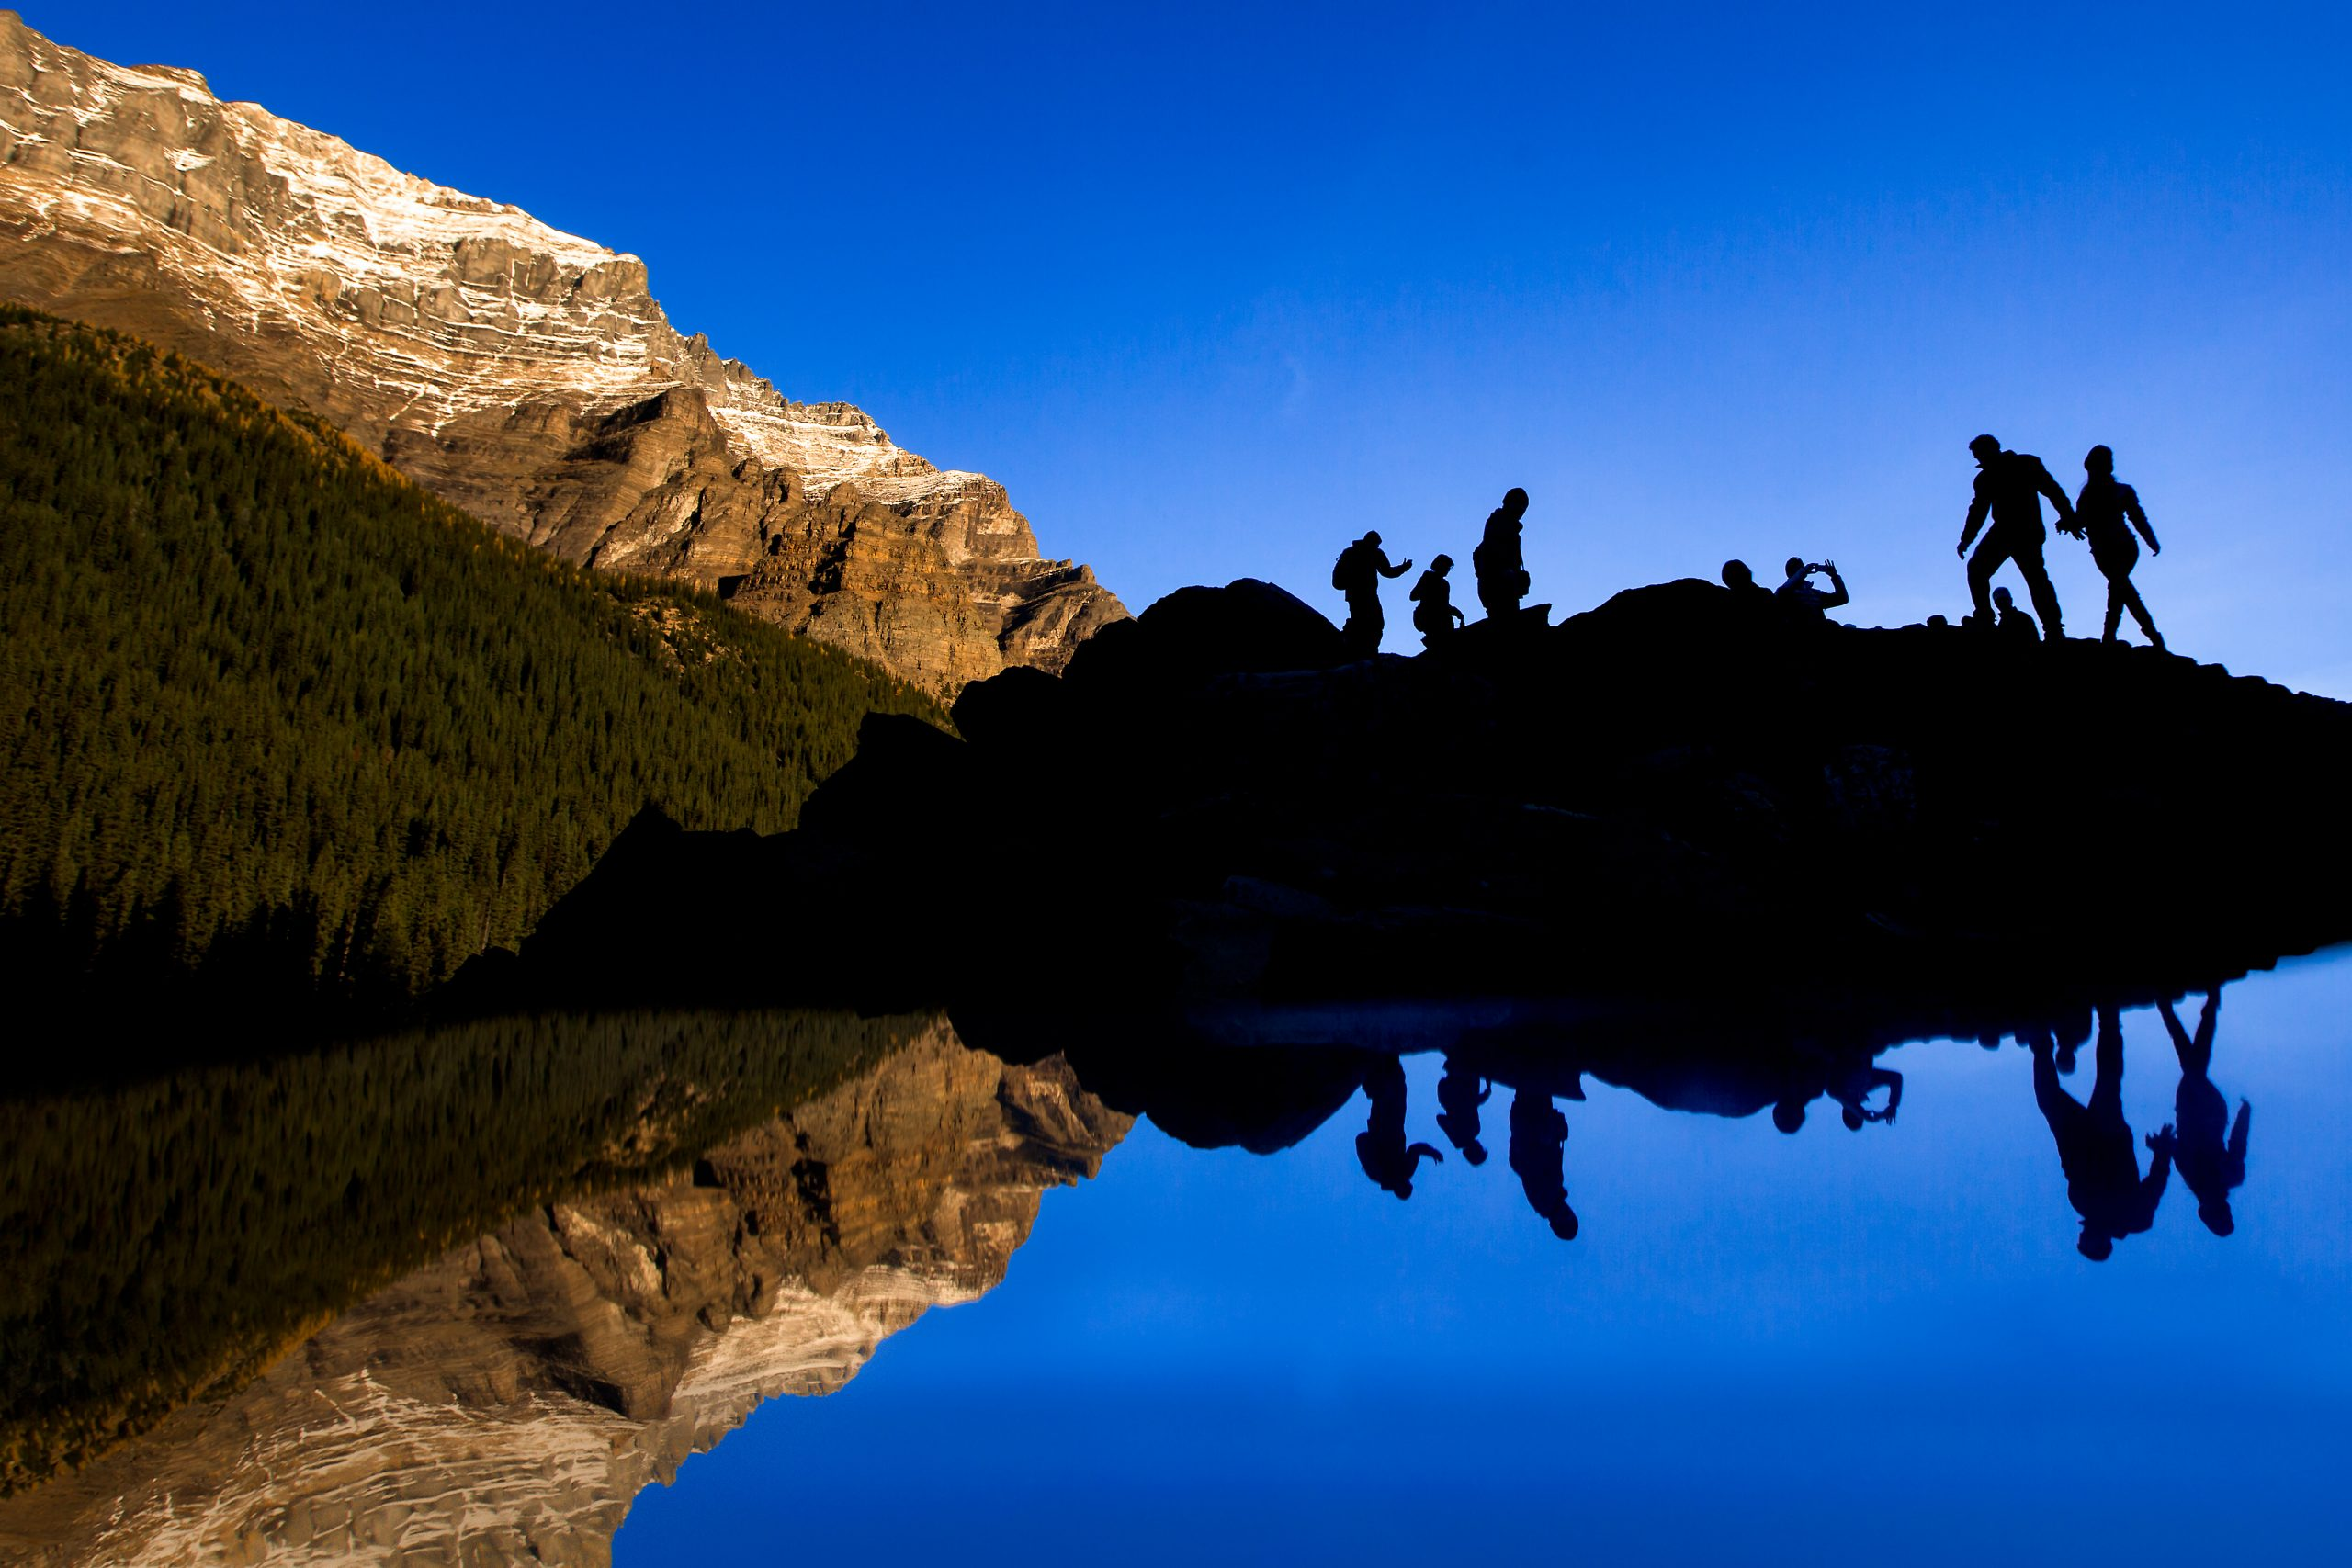 Silhouette of bride and groom and wedding guests standing on top of mountain with their reflection in the lake